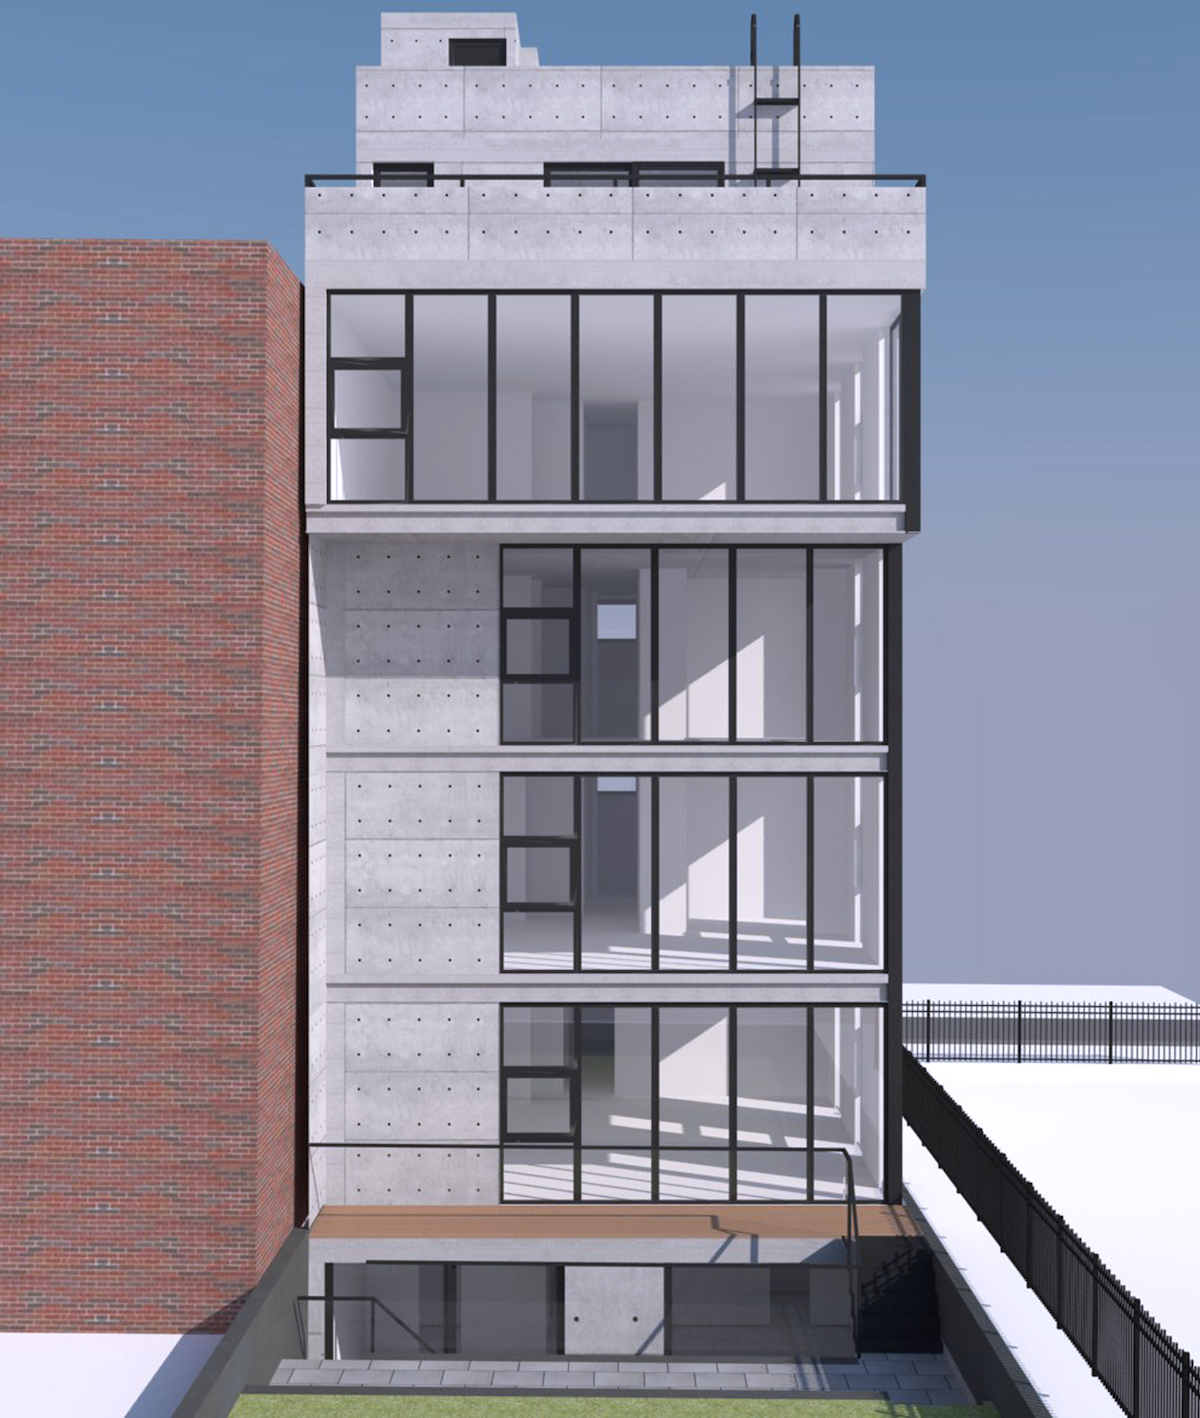 Rear view of 371 Baltic Street, rendering by Atelier New York Architecture